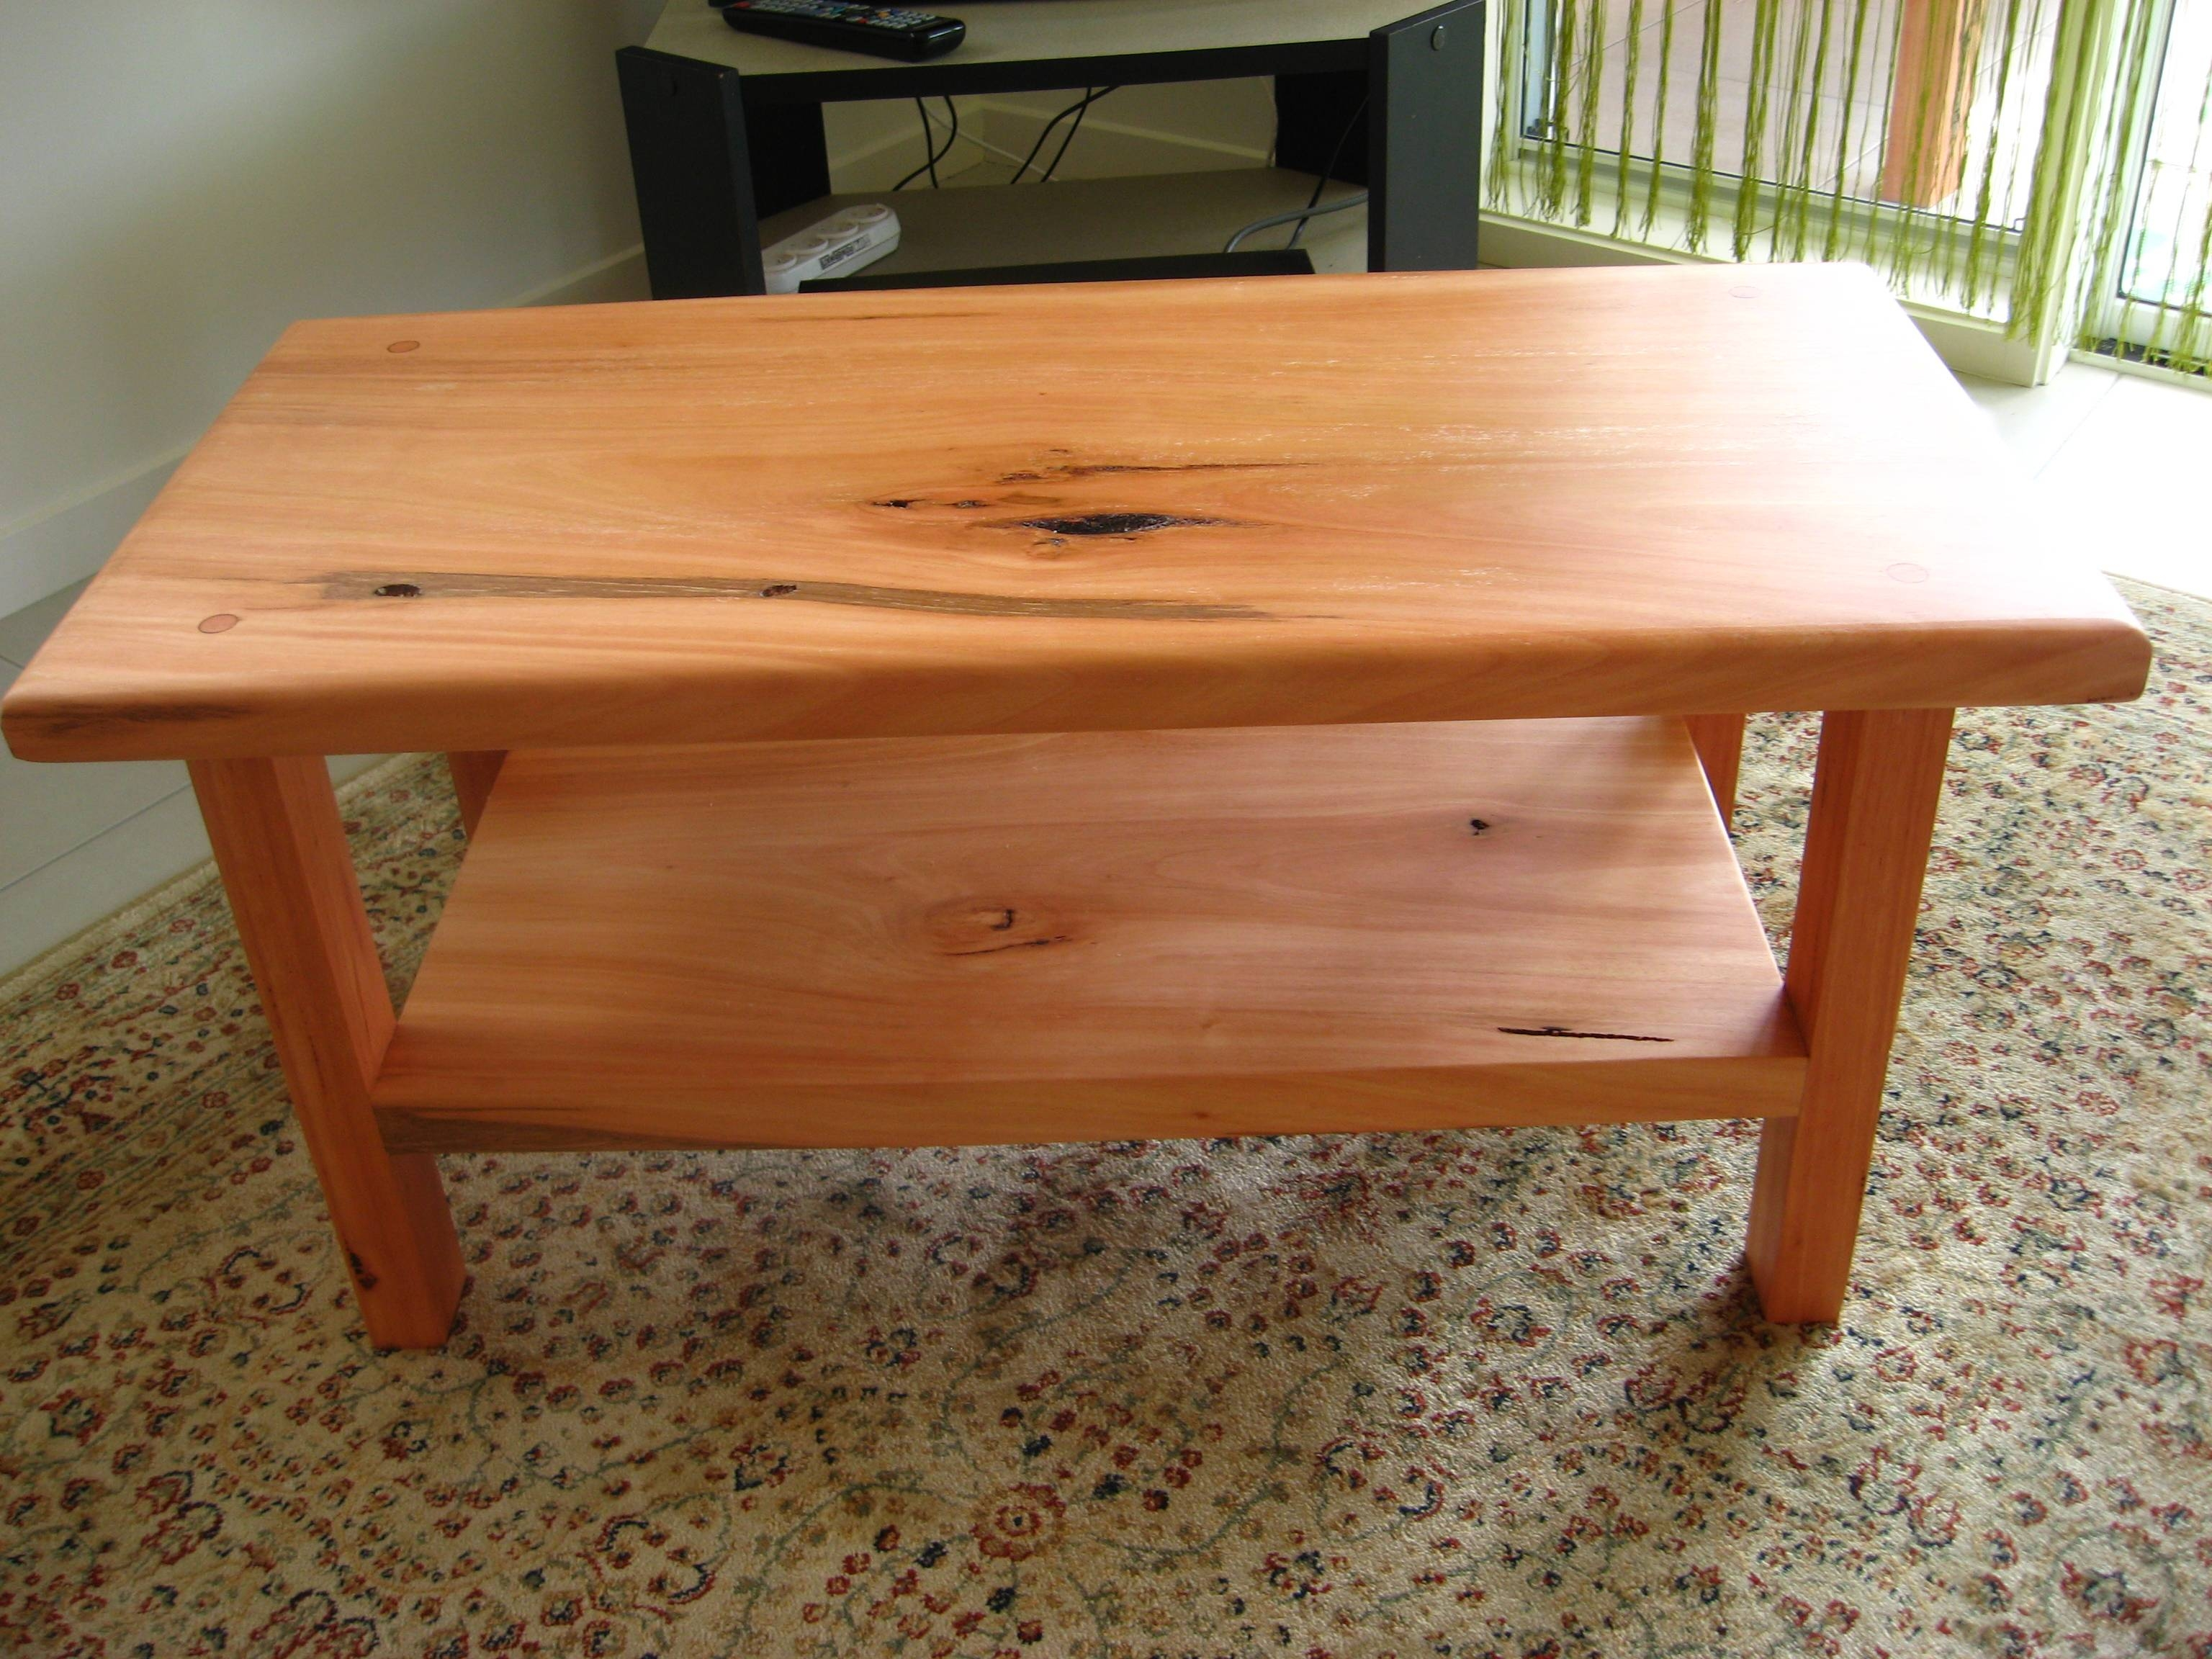 Coffee Tables Ideas: Wood Coffee Table Designs Custom Wood Coffee With Regard To Handmade Wooden Coffee Tables (View 6 of 15)